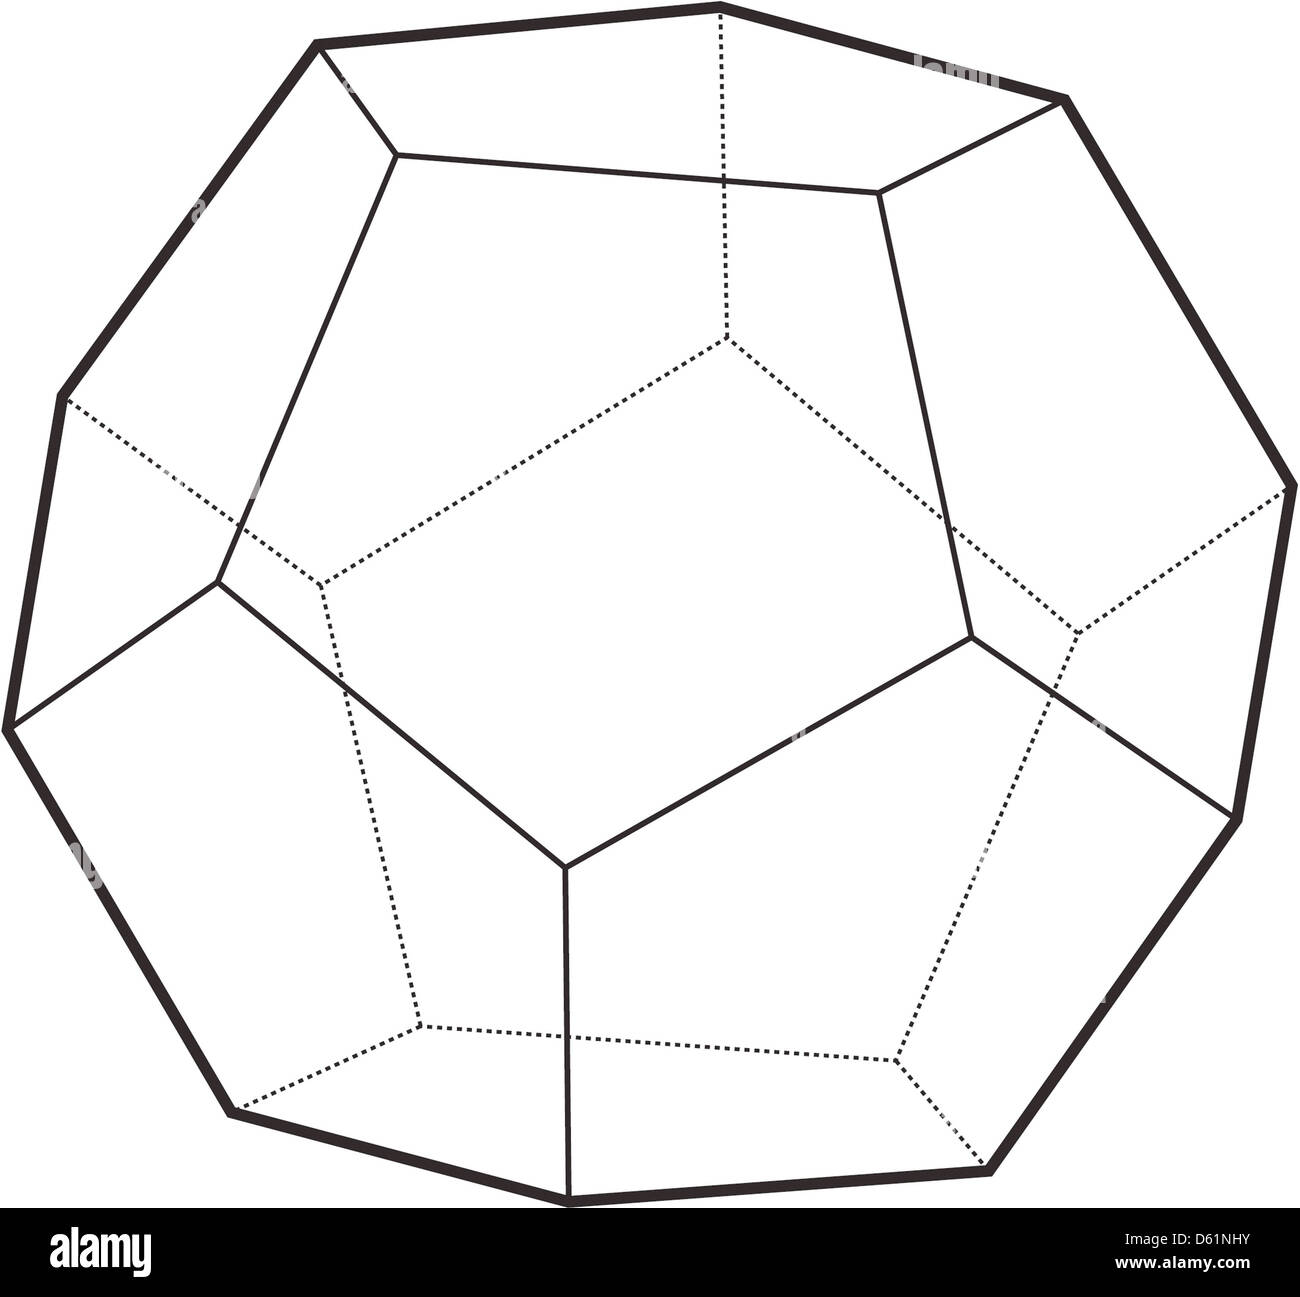 dodecahedron stock photo 55357959 alamy